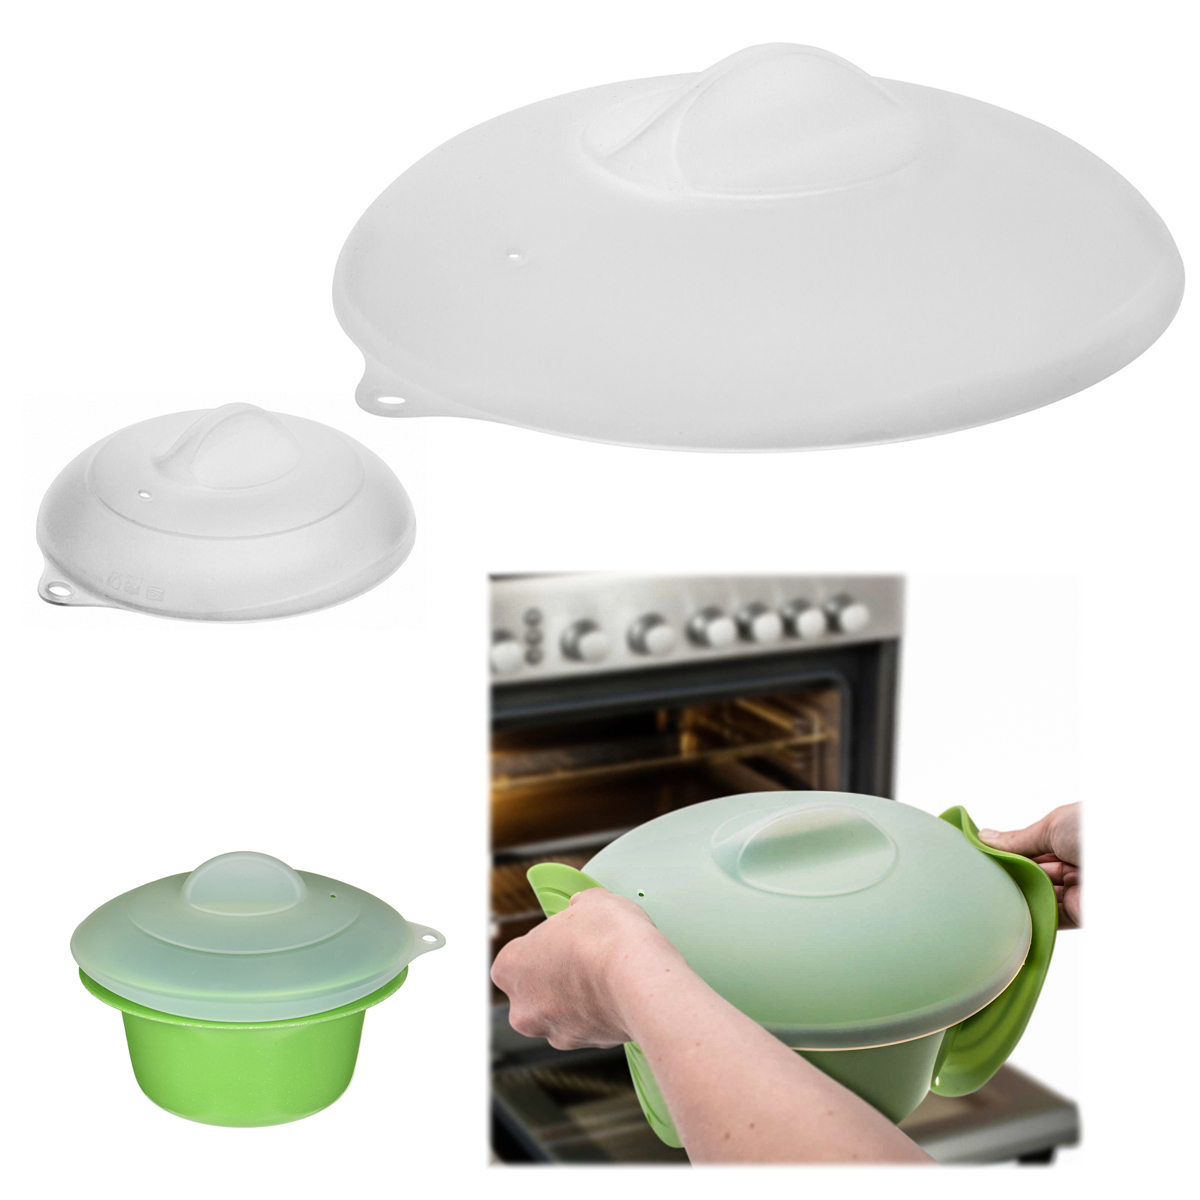 Zak Set of 2 Silicone Lids Dome Microwave Cover for Food Splatter Guard Large Small Plates